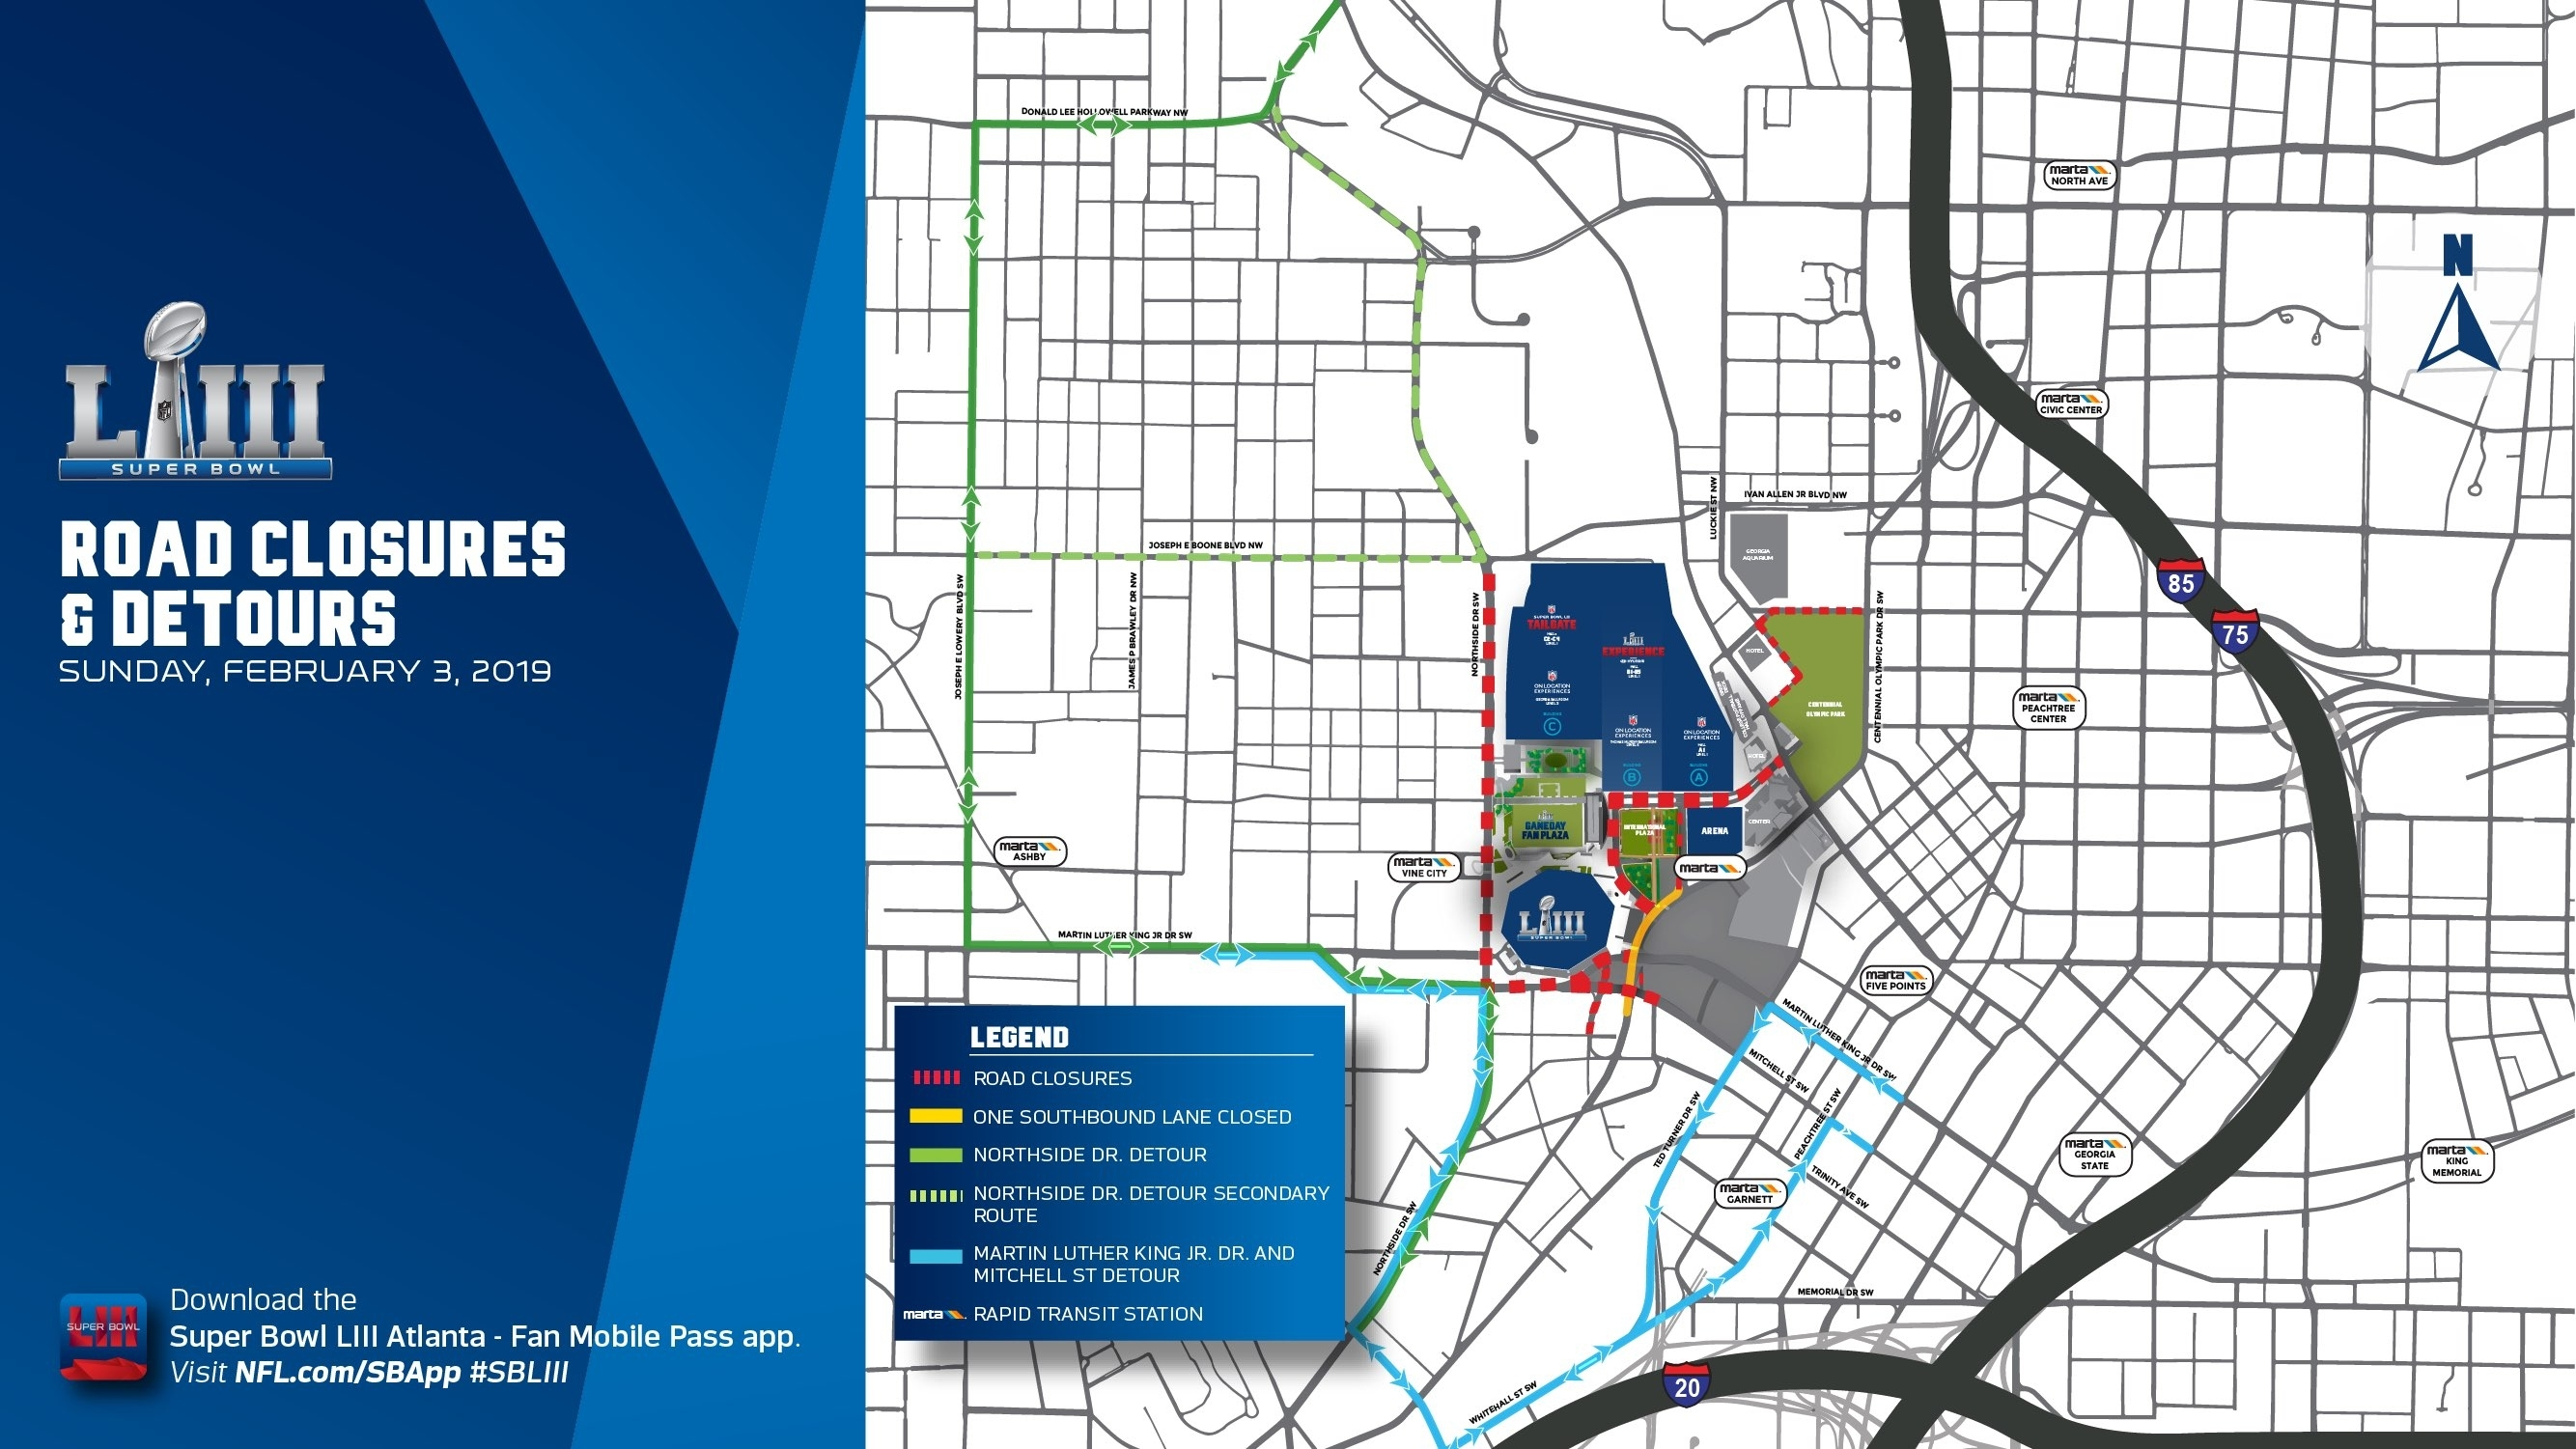 Gameday-Road-Closure-Map Copy - Mercedes Benz Stadium with regard to Super Bowl 2019 Road Closures Map